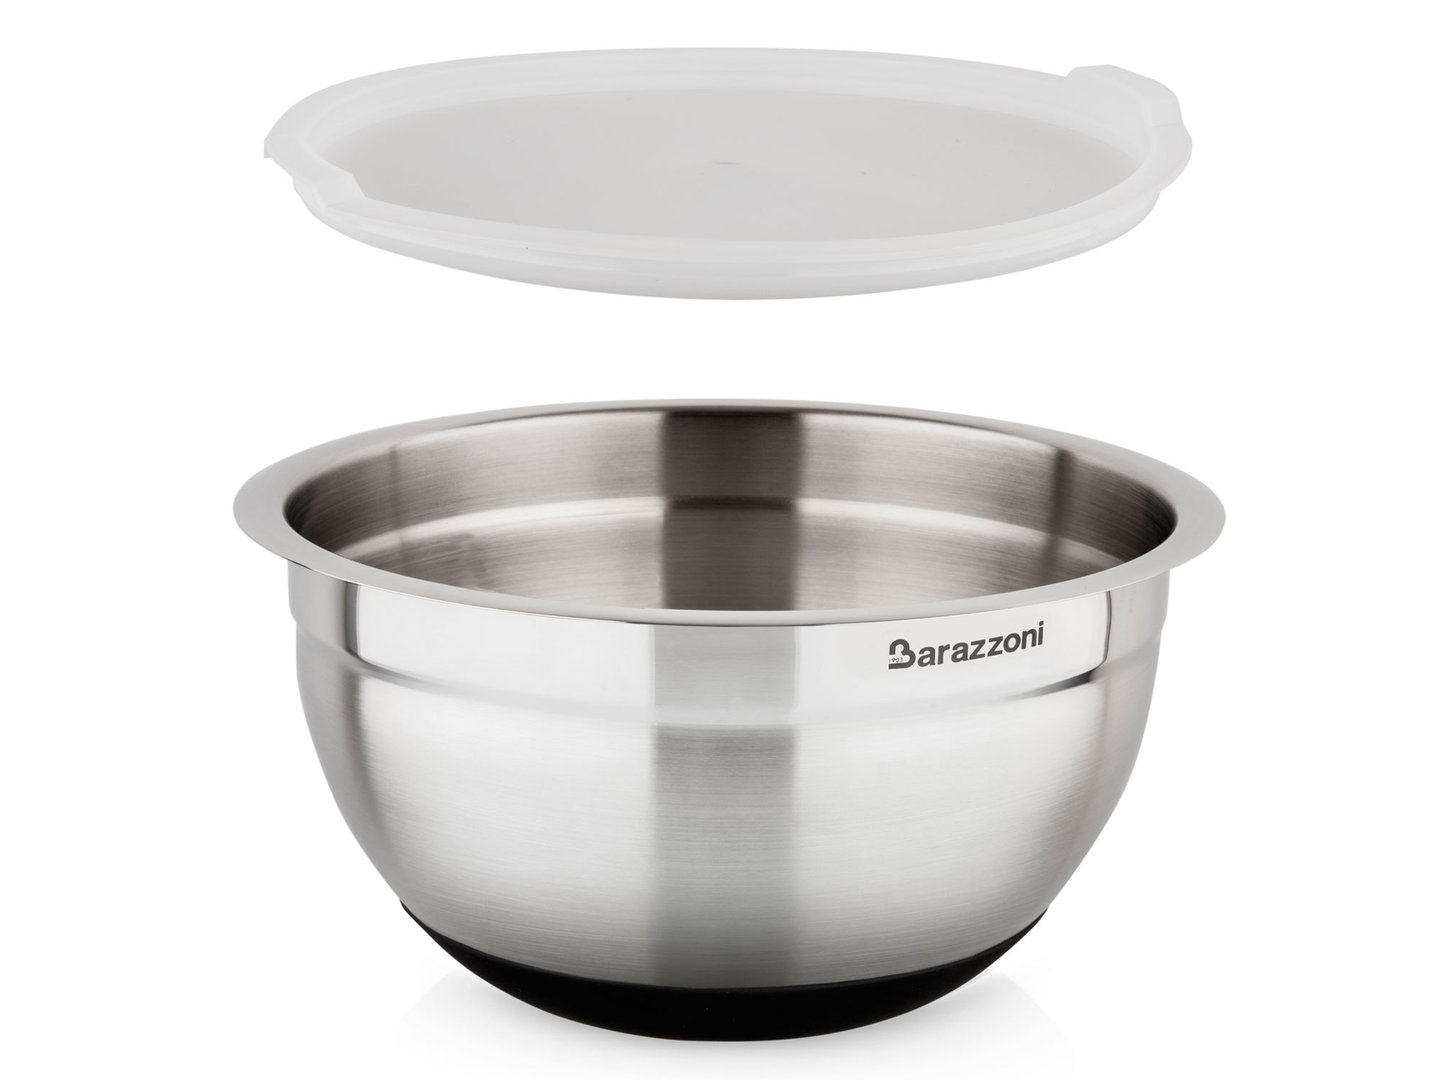 BARAZZONI slip-resistant mixing bowl stainless steel with lid 24 cm 5 liters